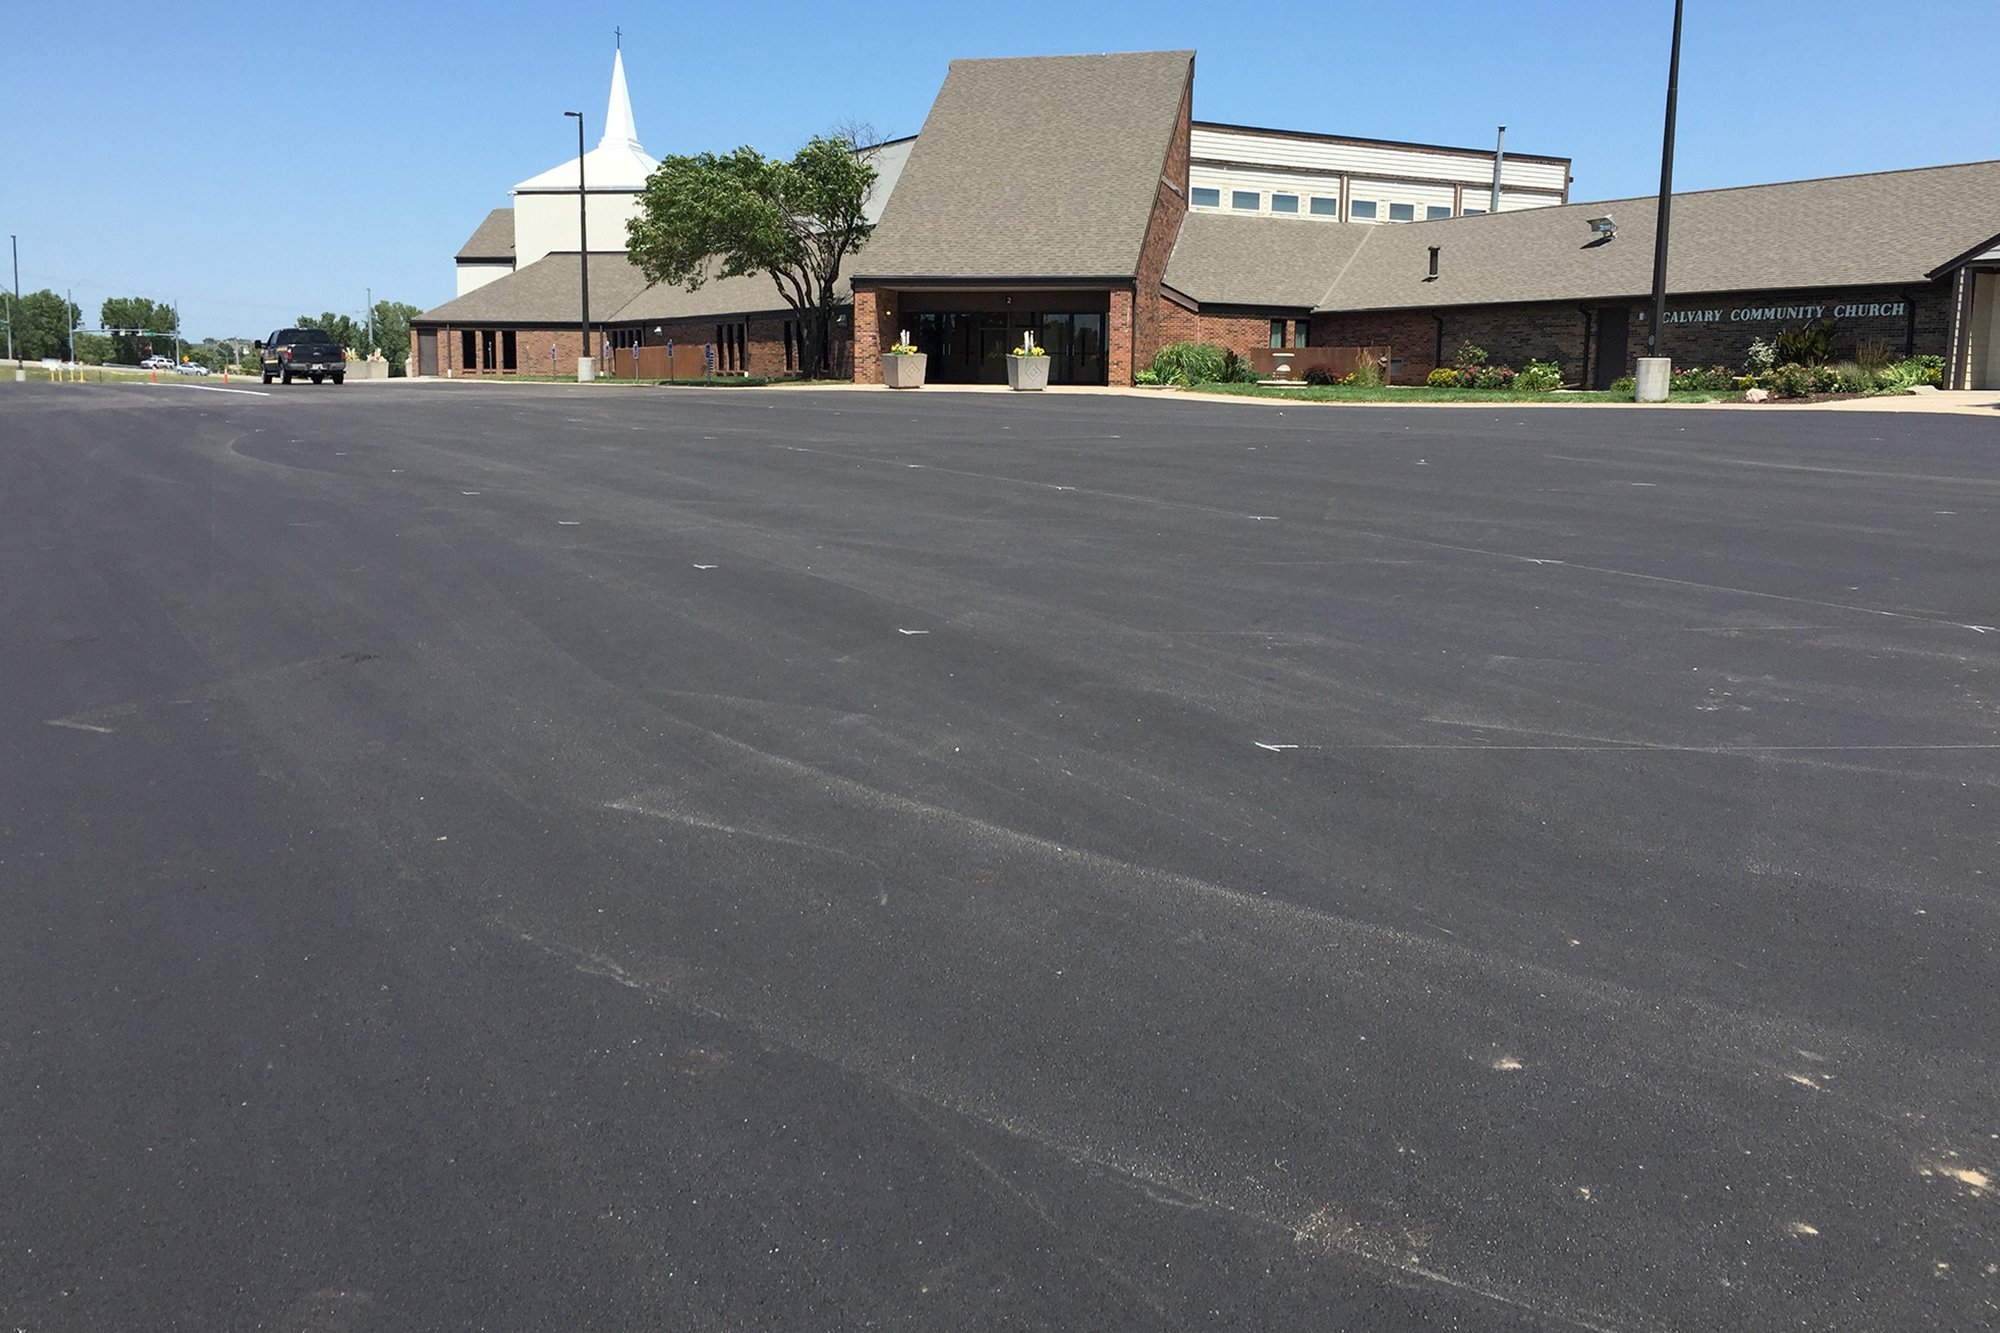 Lincoln Paving Asphalt Repair and Patching Lincoln Asphalt parking lot striping before4 - America's Pavement Maintenance Specialist